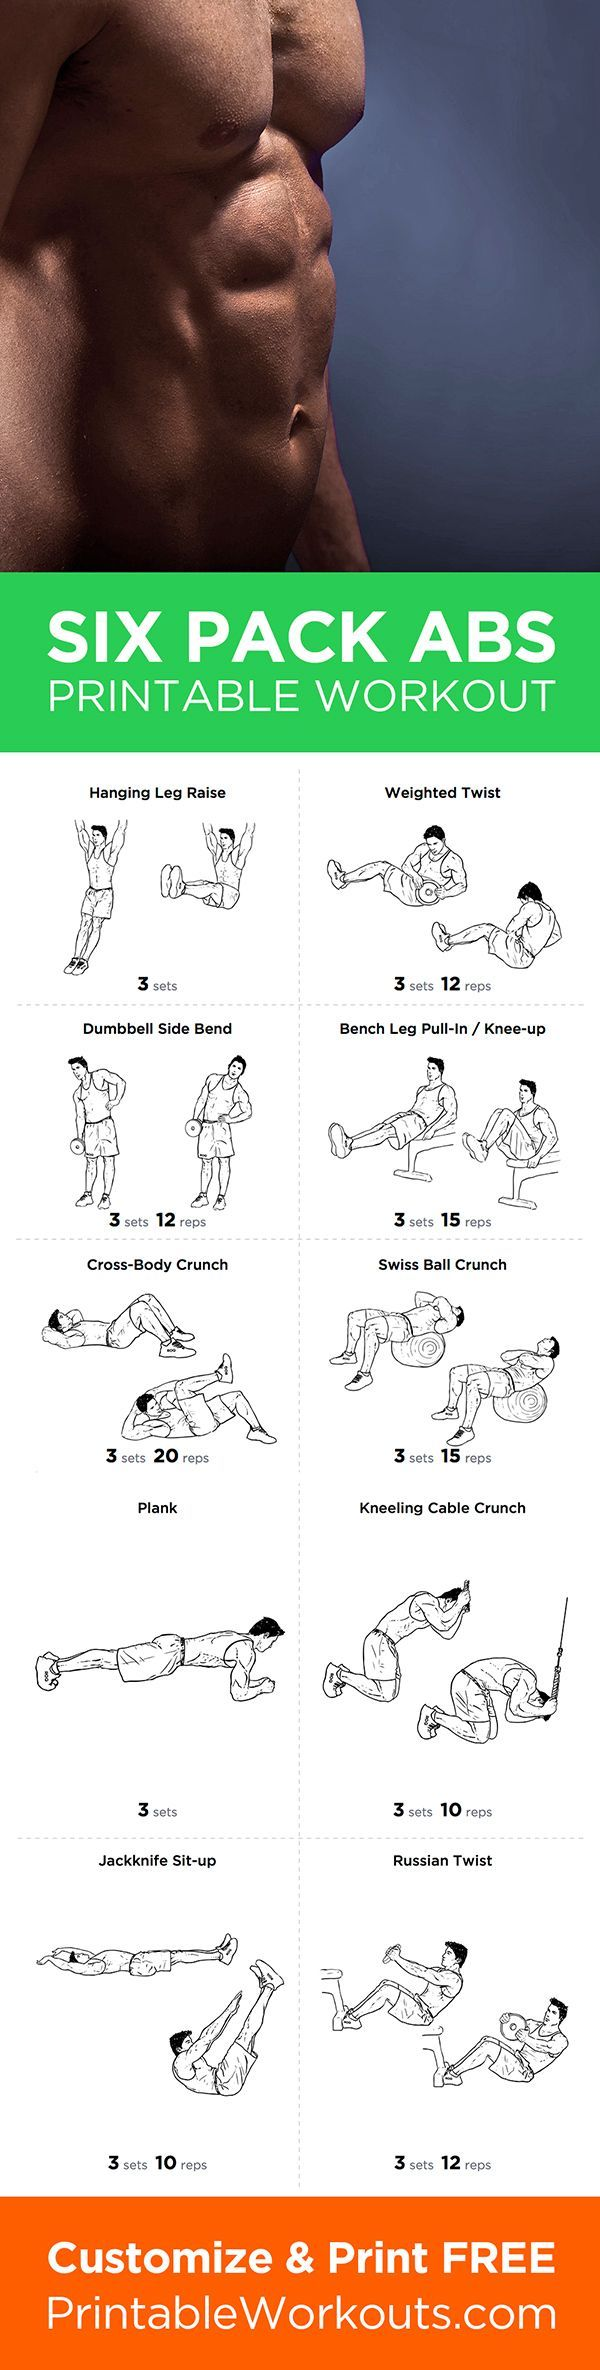 Six Pack Abs Gain Muscle Or Weight Loss These Workout Plan Is Great